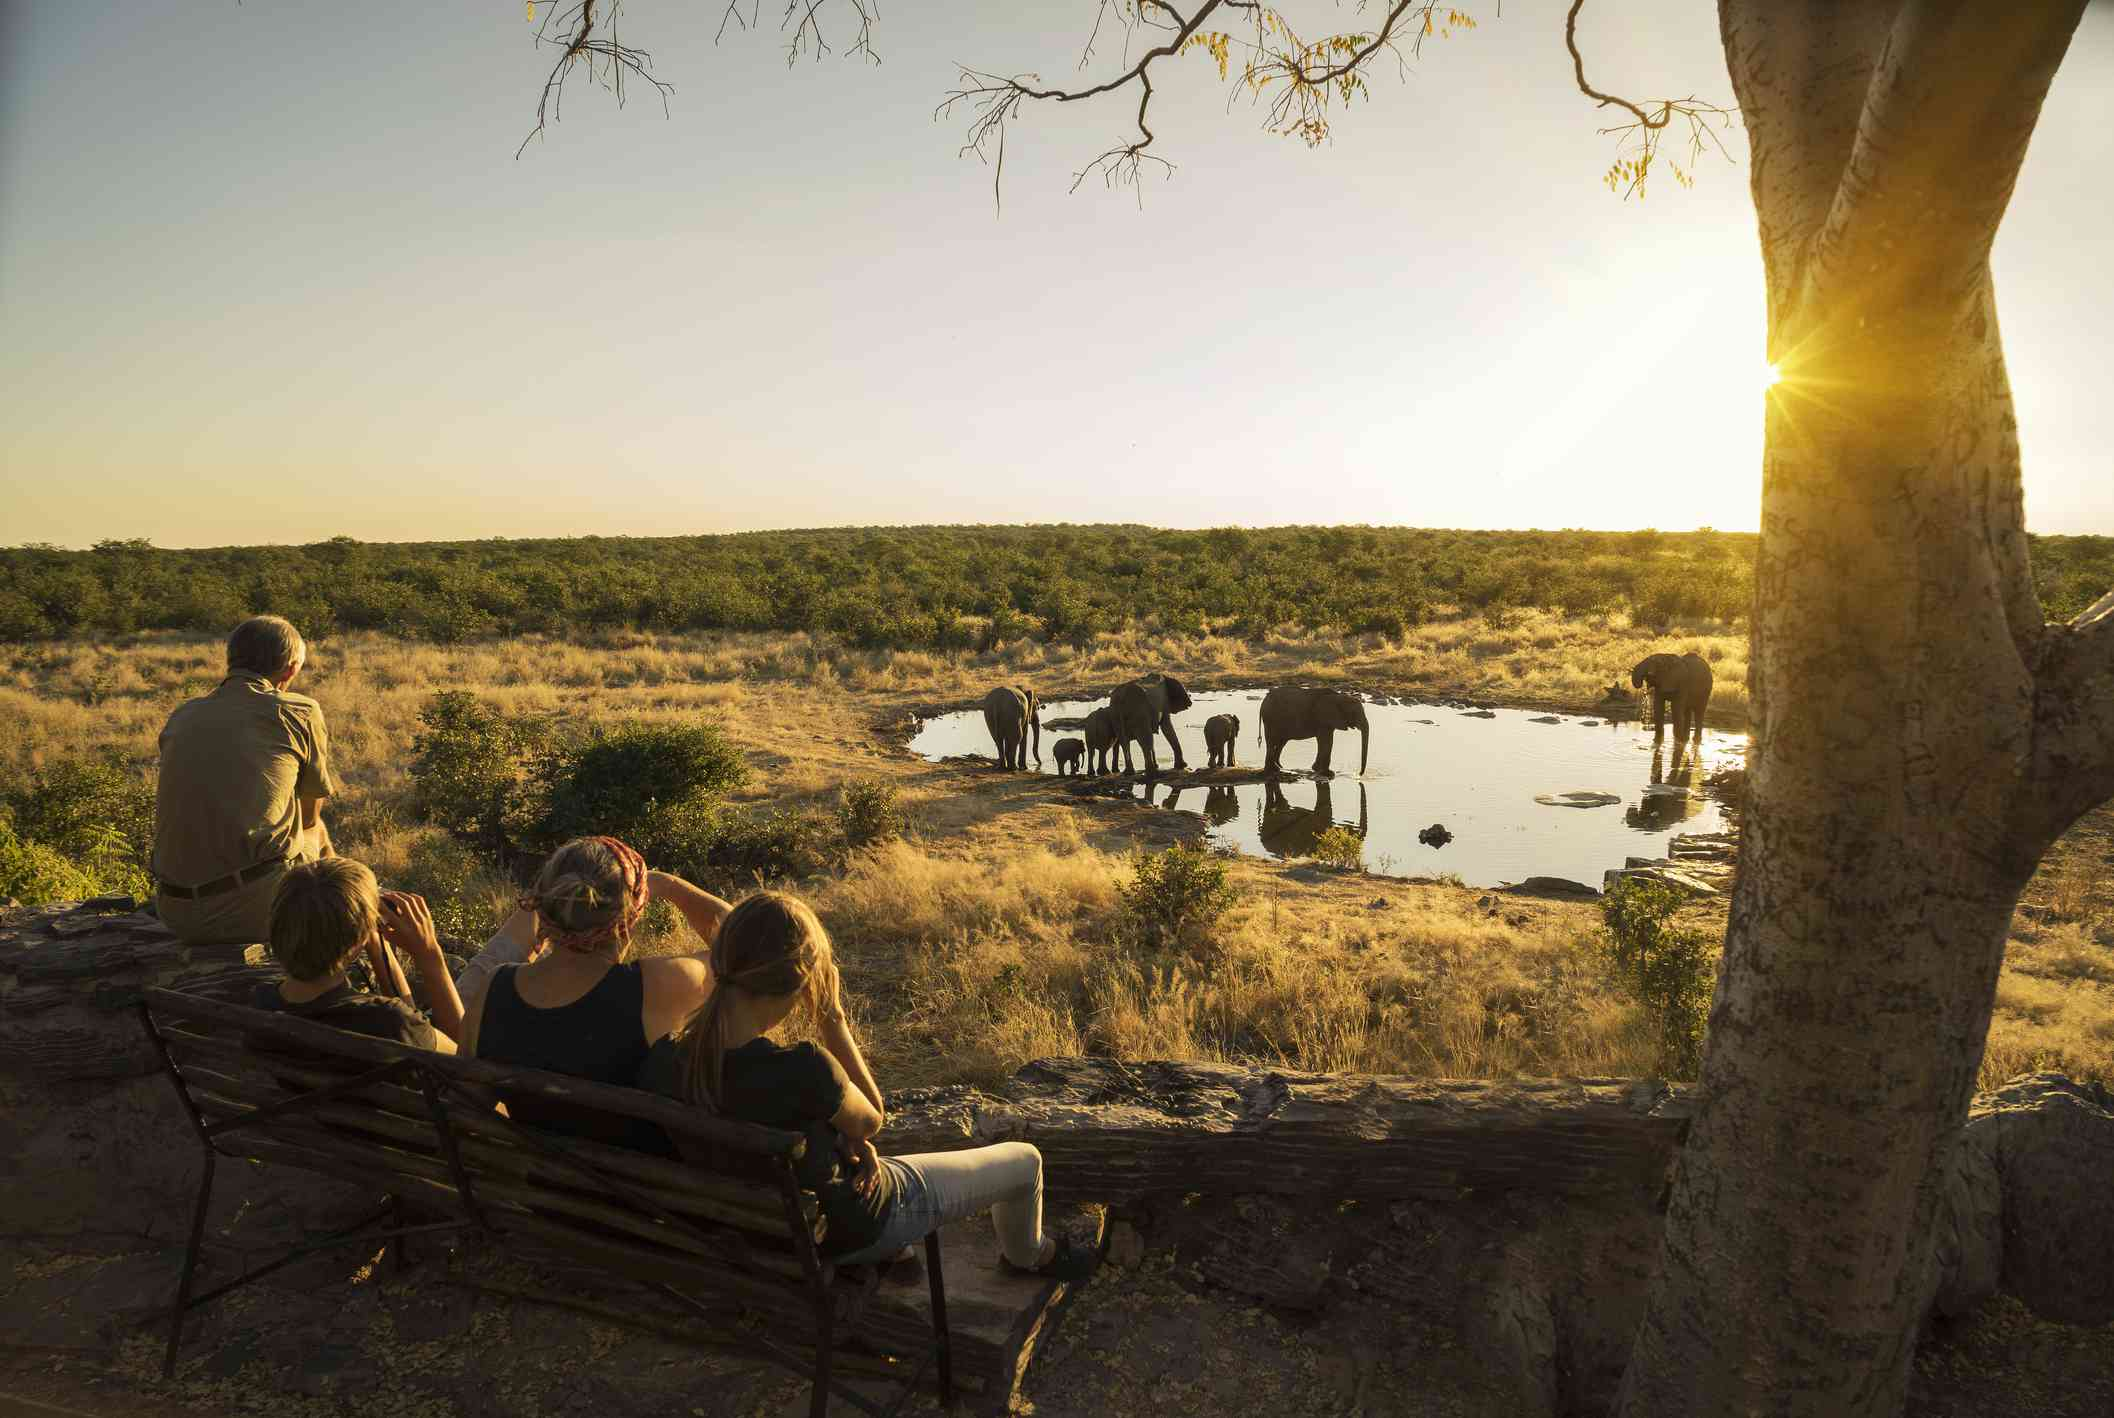 Watching elephants from a safe distance in Namibia